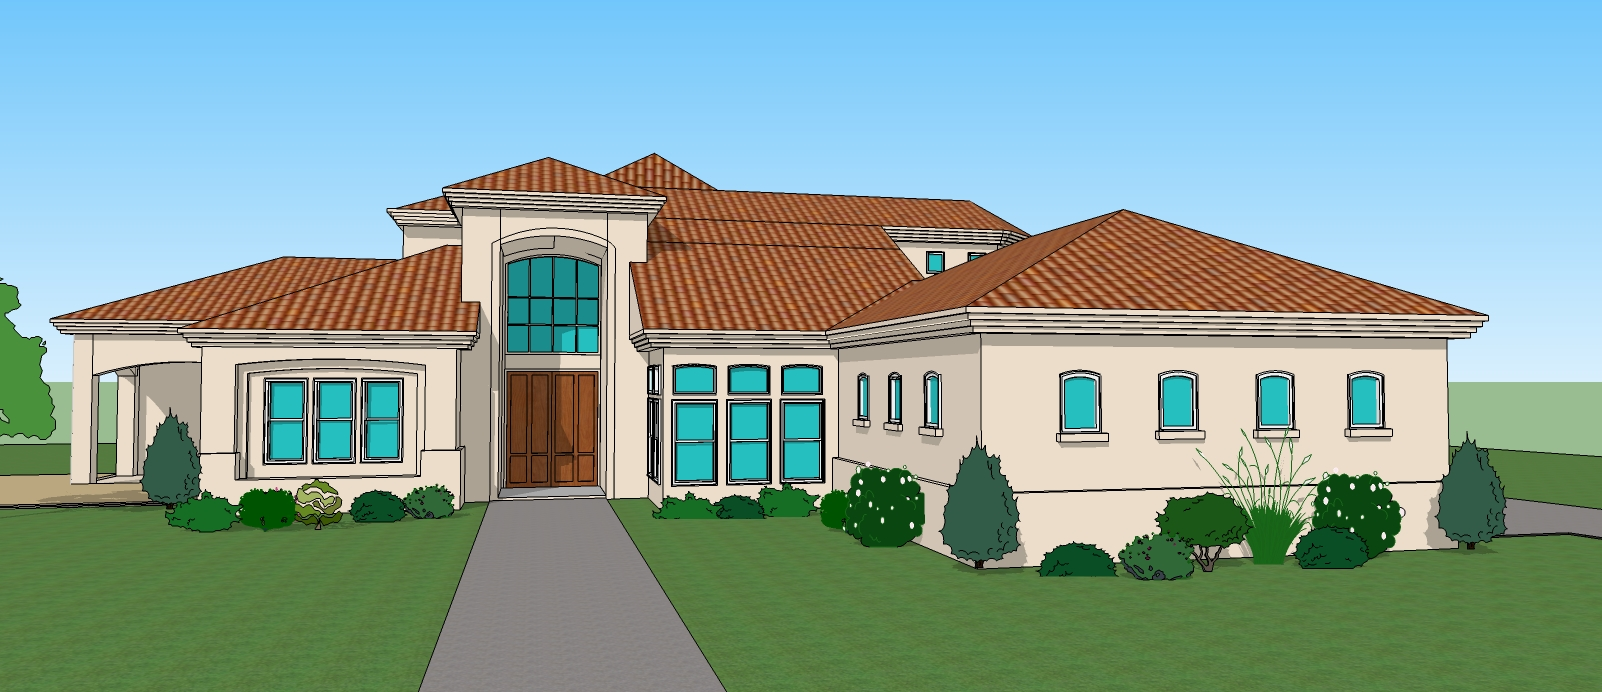 3d house drawing images frompo 1 for Simple mansion